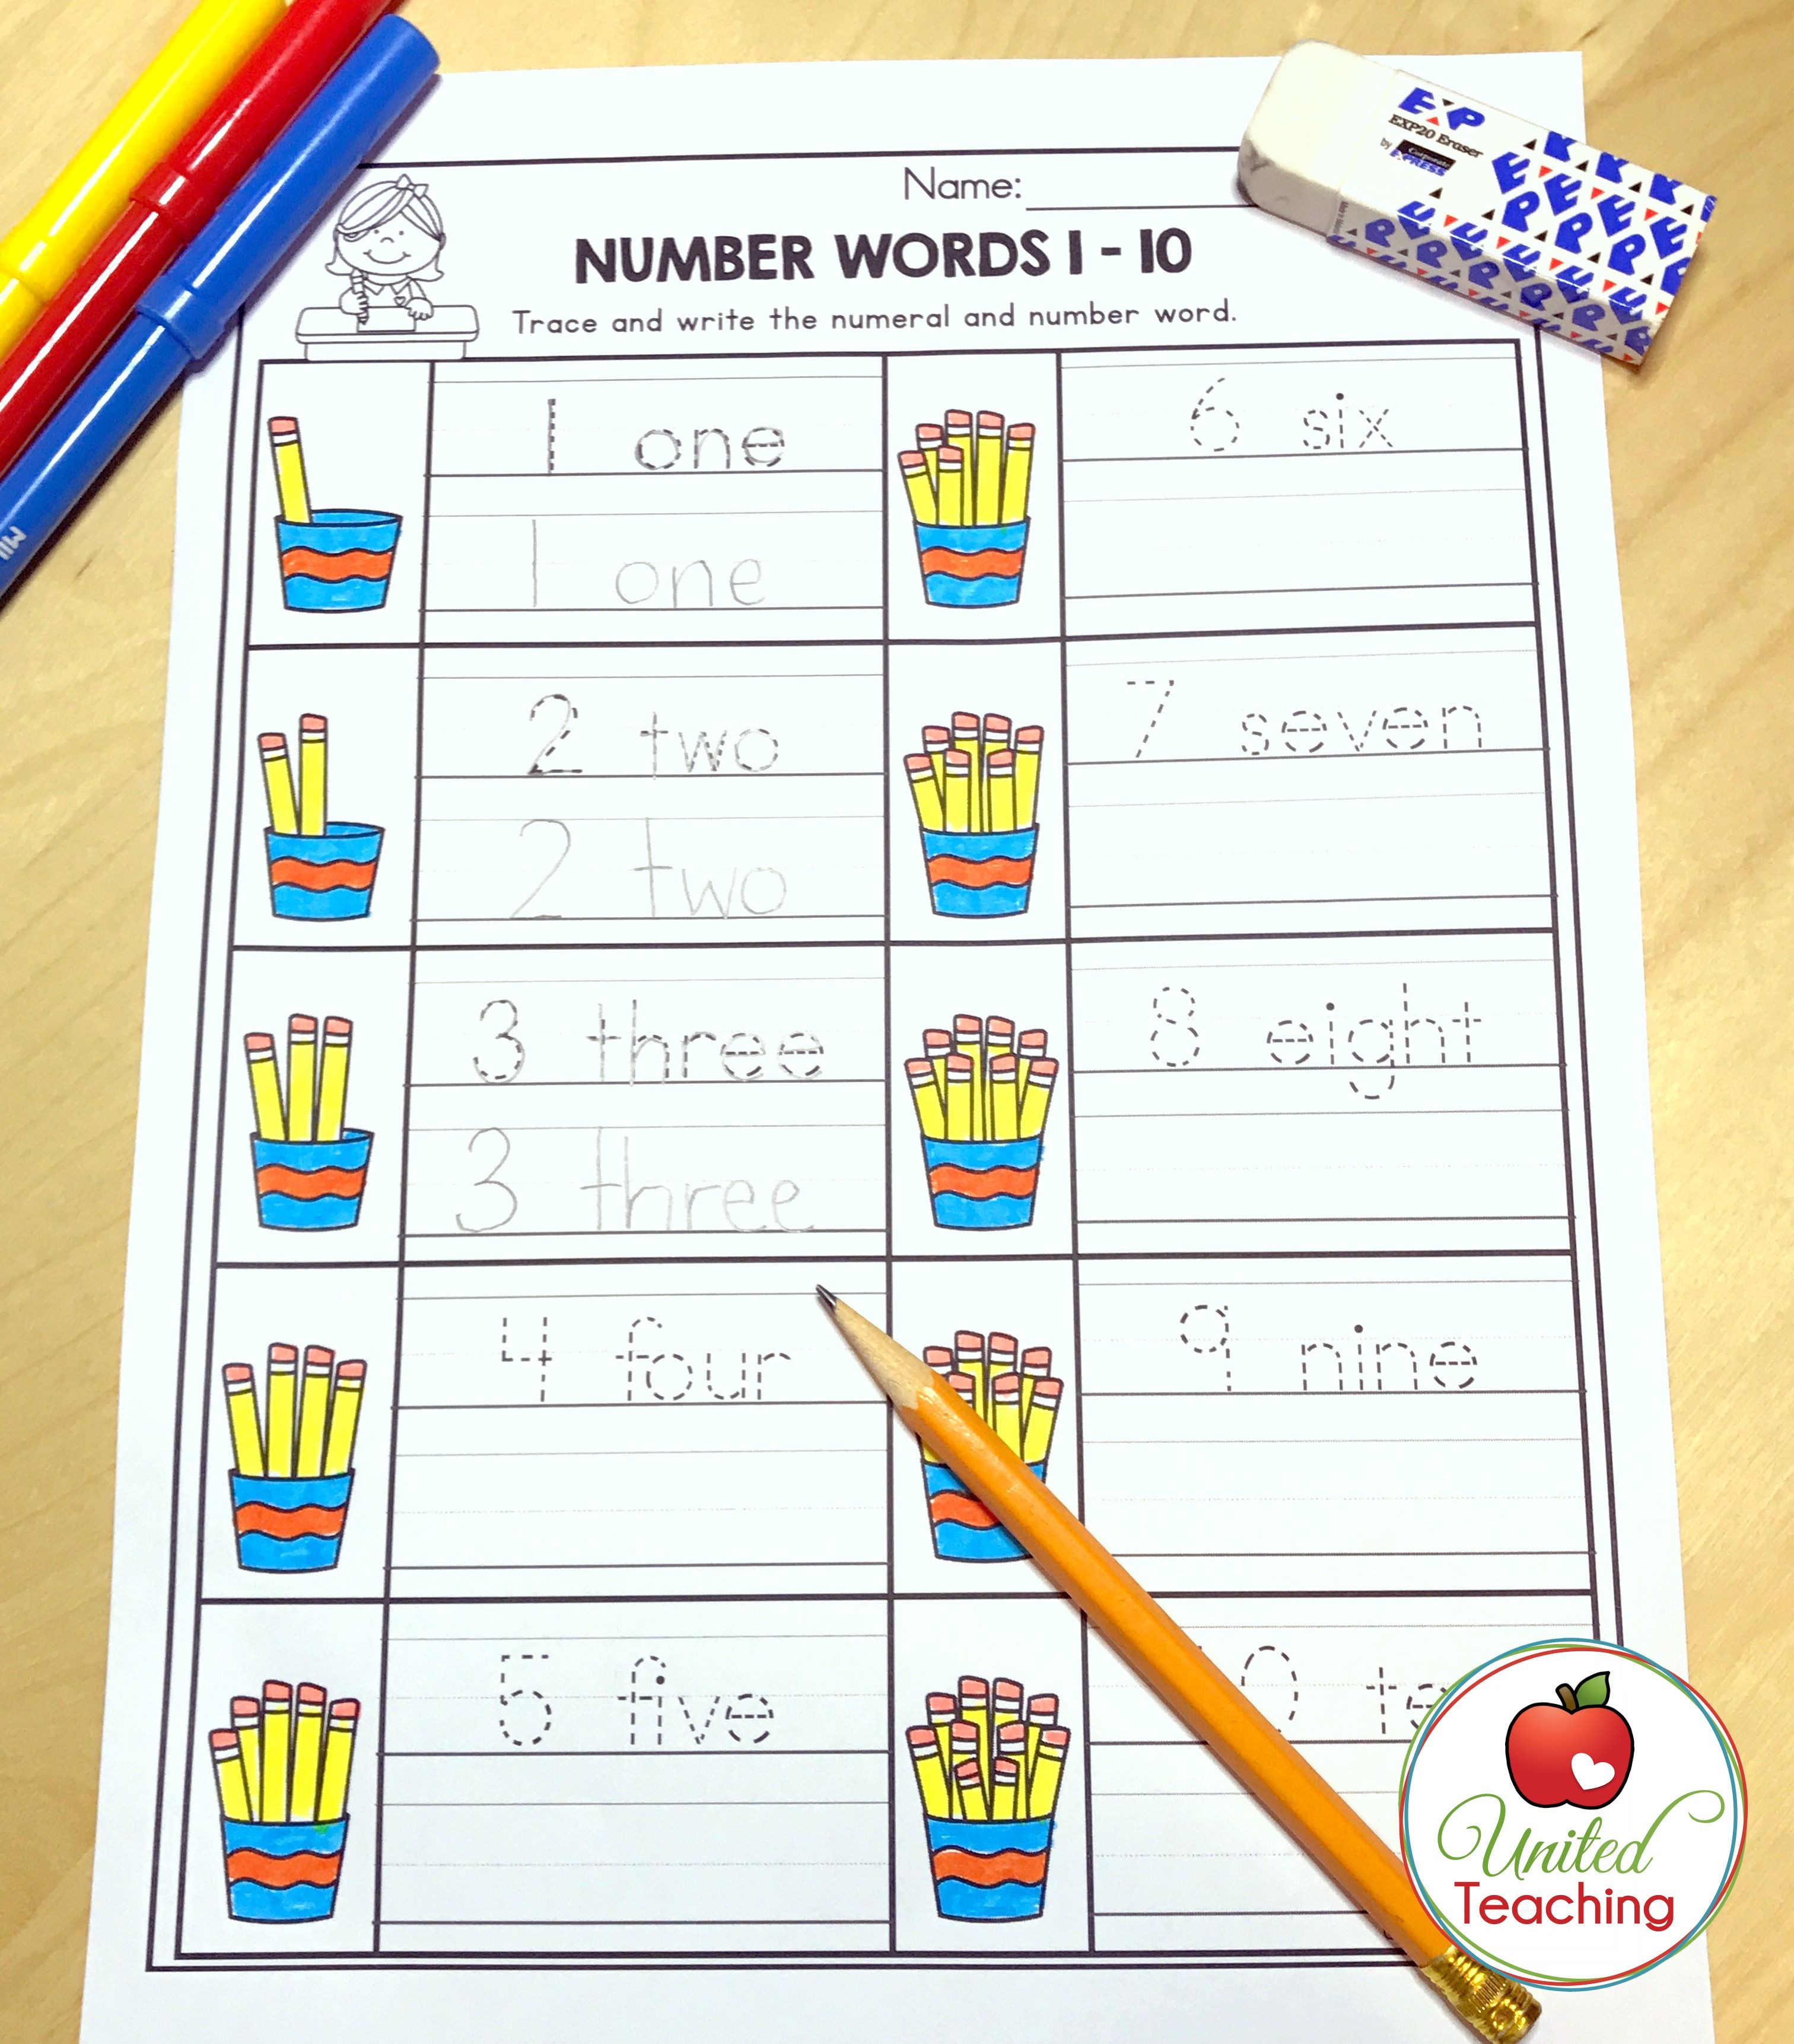 Counting Numbers Number Words And Handwriting Al In One